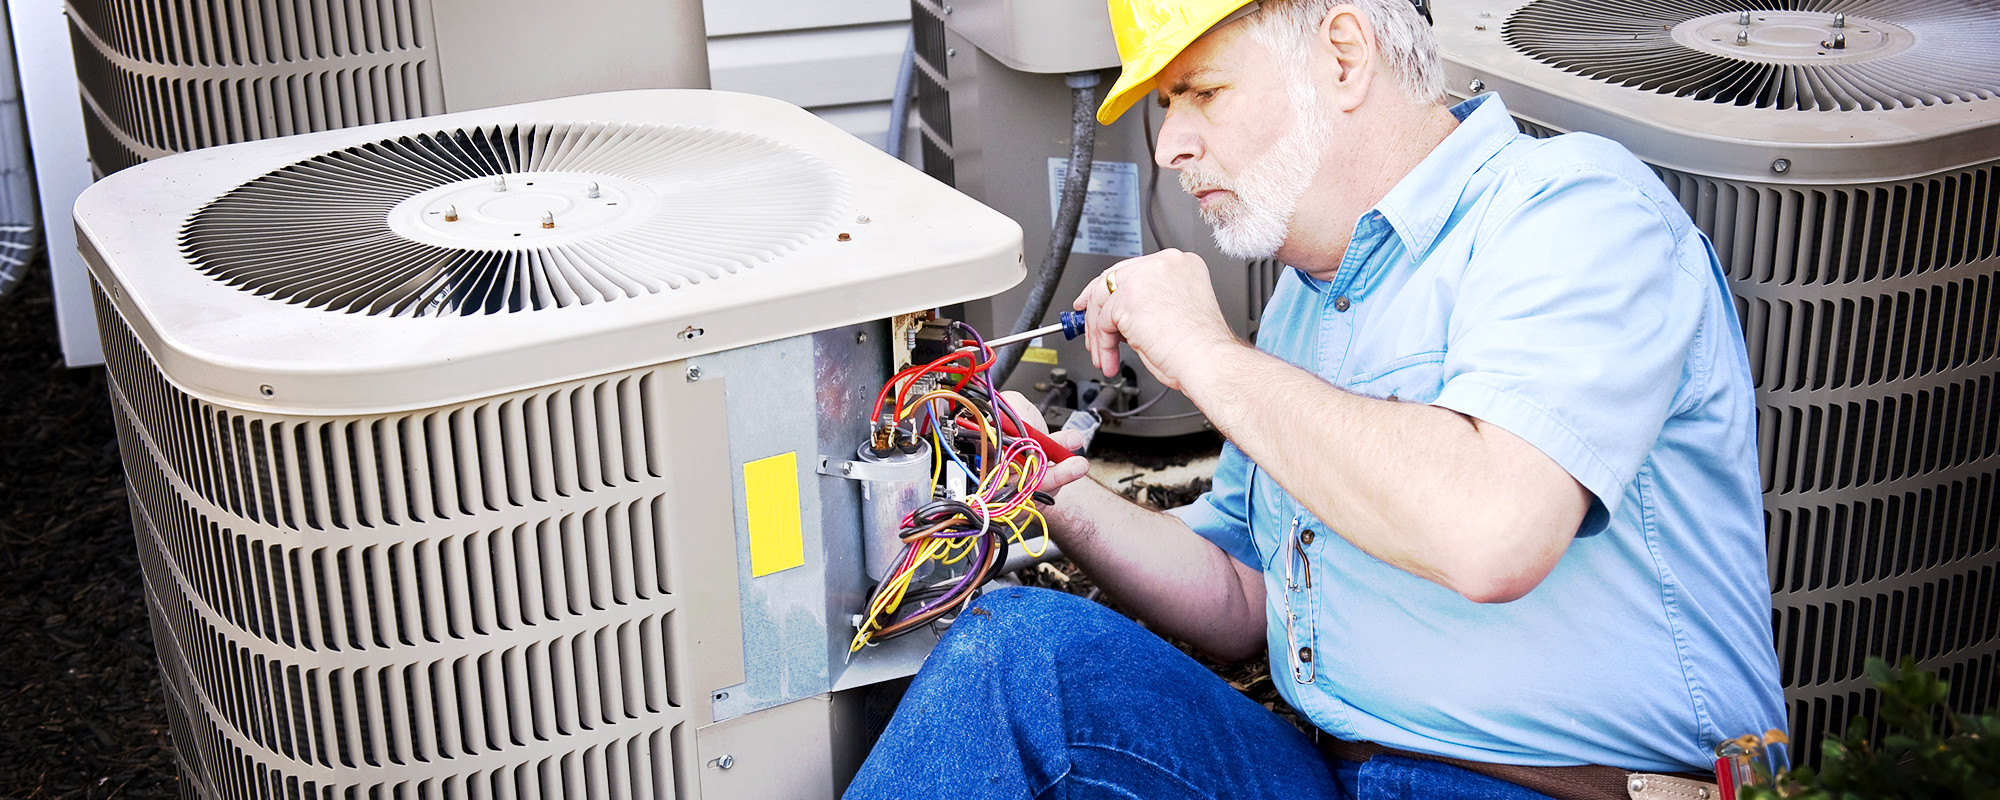 Completing Every Project with Integrity, Performance & Value   We take pride in offering some of the best HVAC customer services around. We'll even work around your schedule.   Get Your Quote